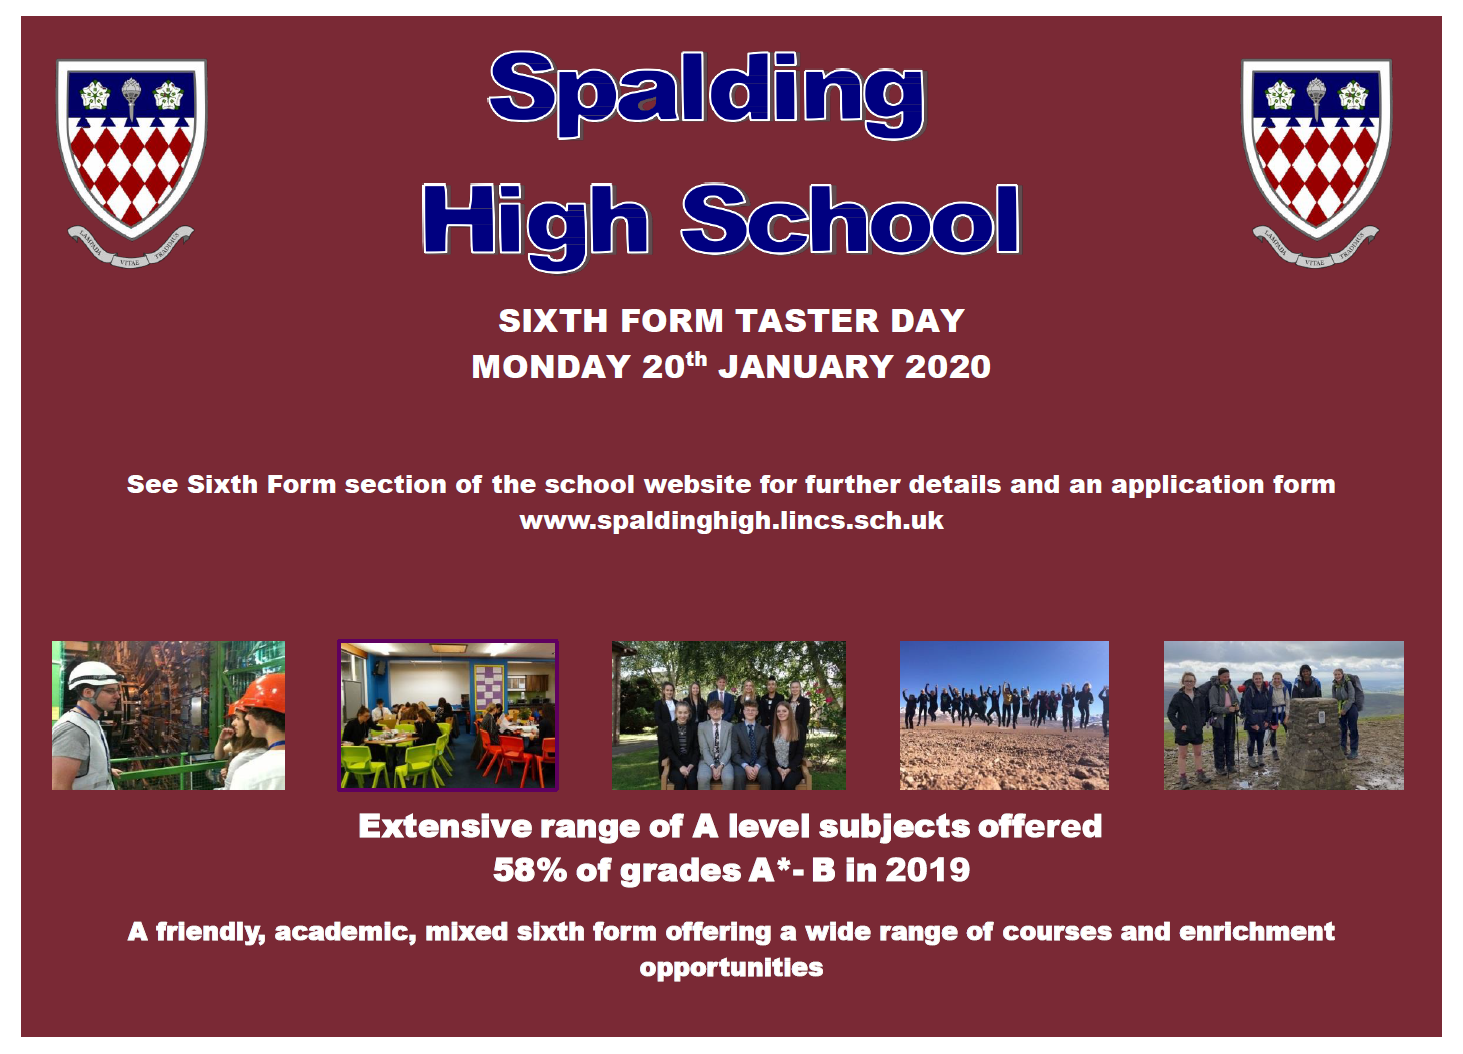 Sixth Form - Sixth Form Taster Day Advert